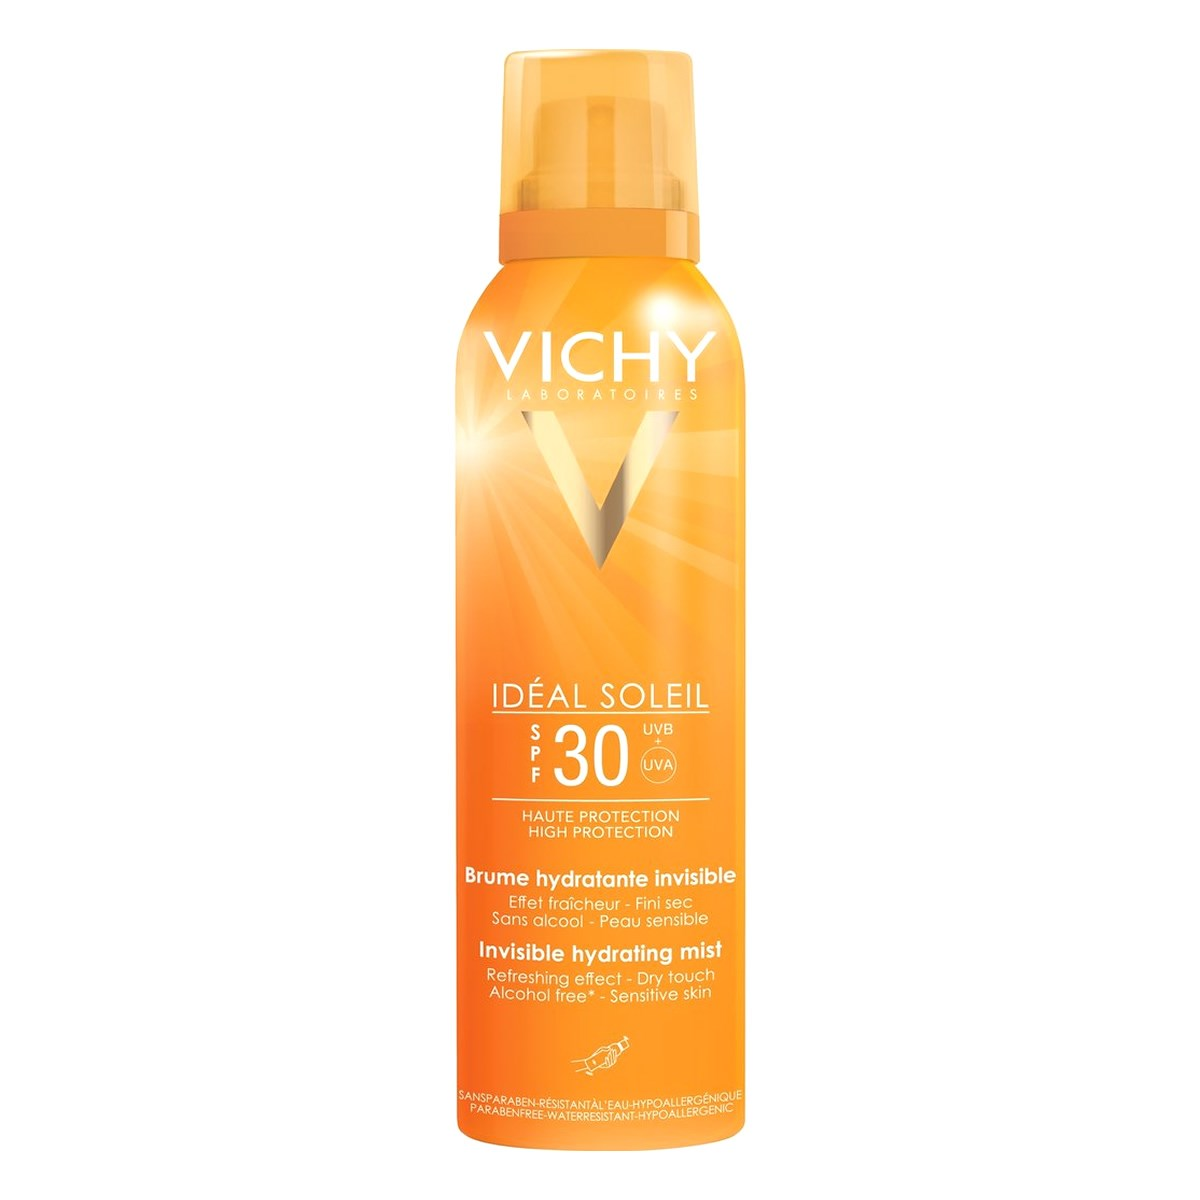 Vichy Ideal Soleil Invisible Hydrating Mist SPF30